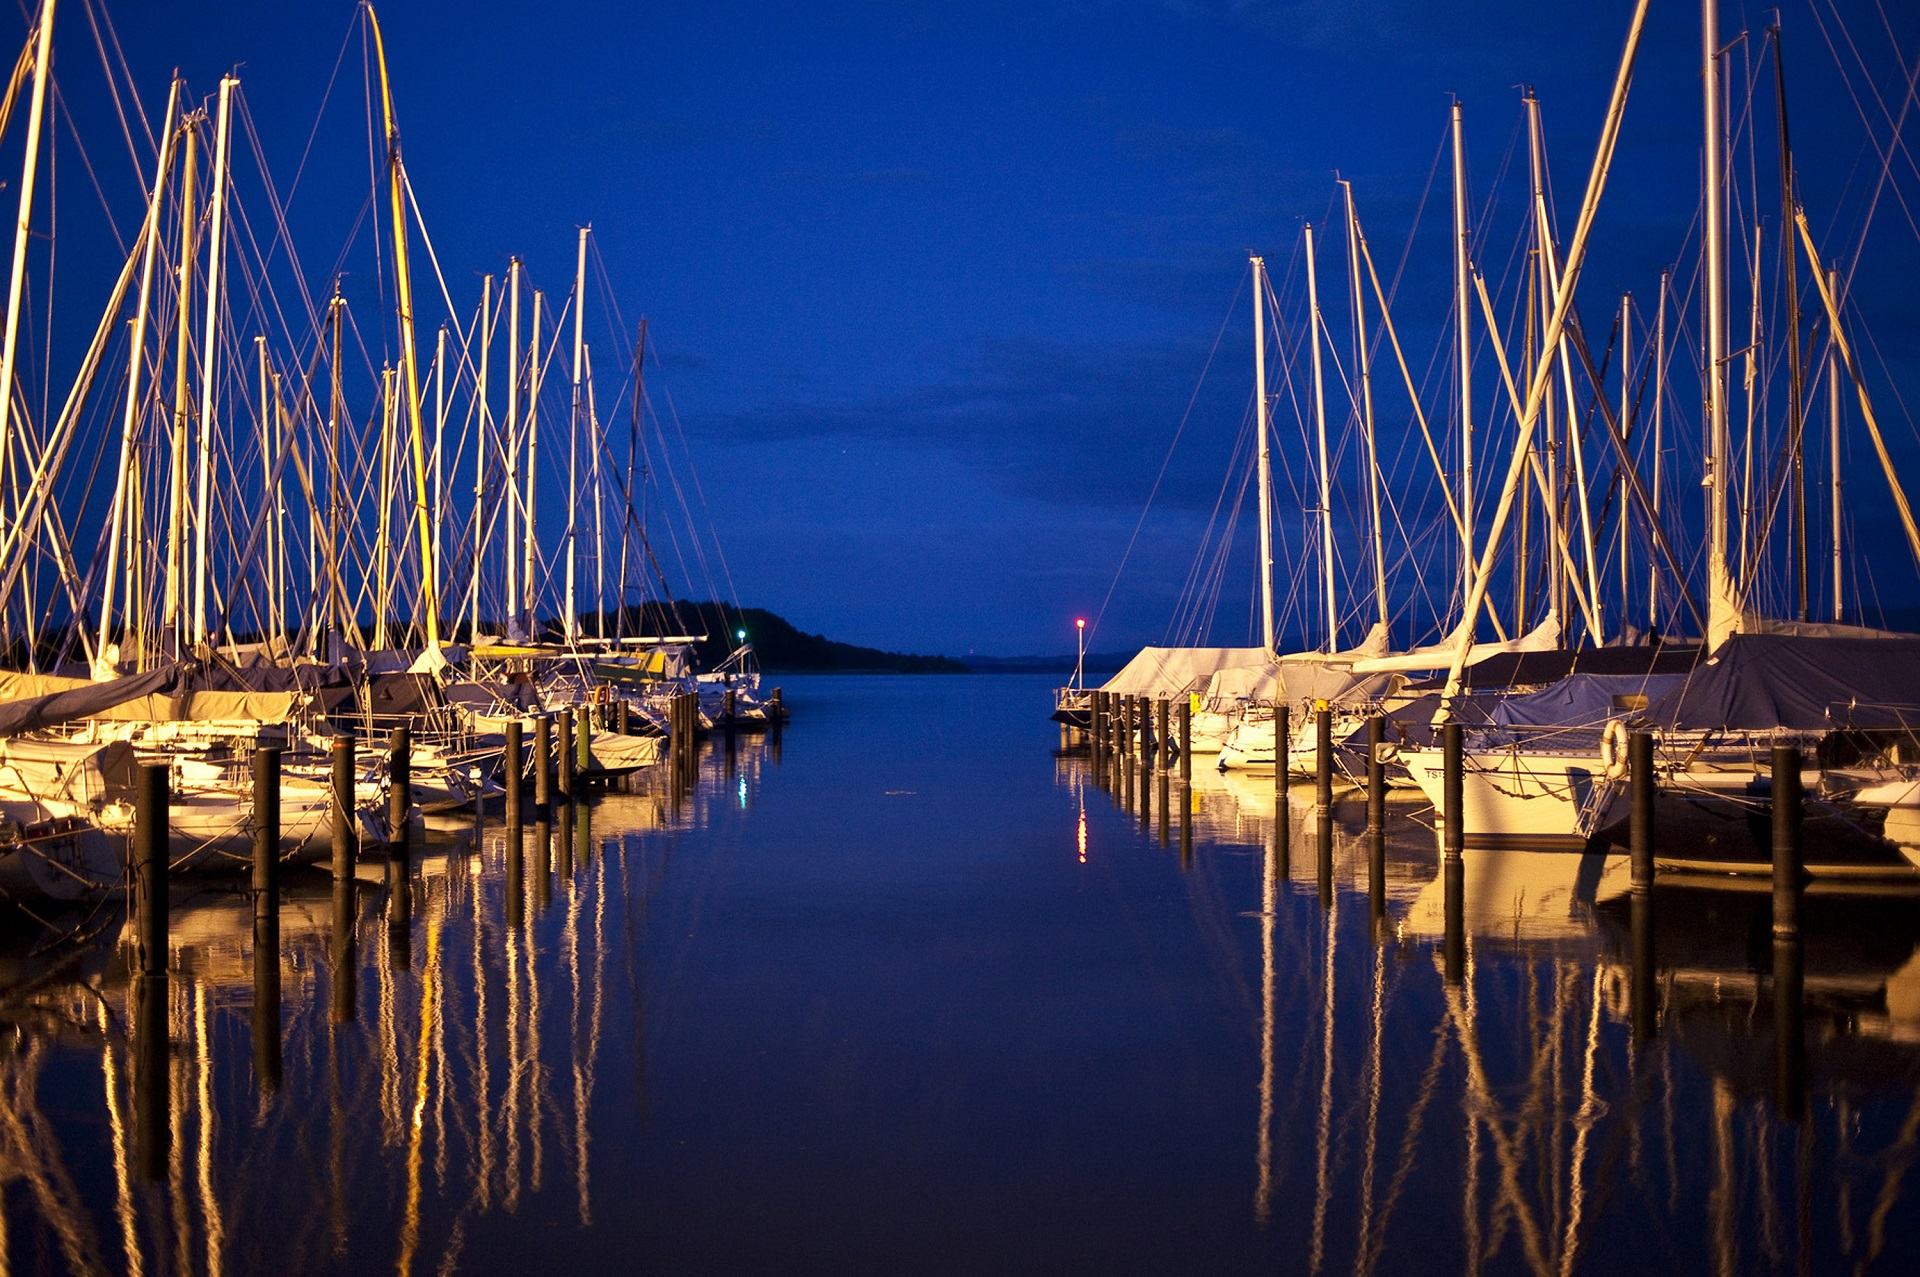 Yachthotel Chiemsee